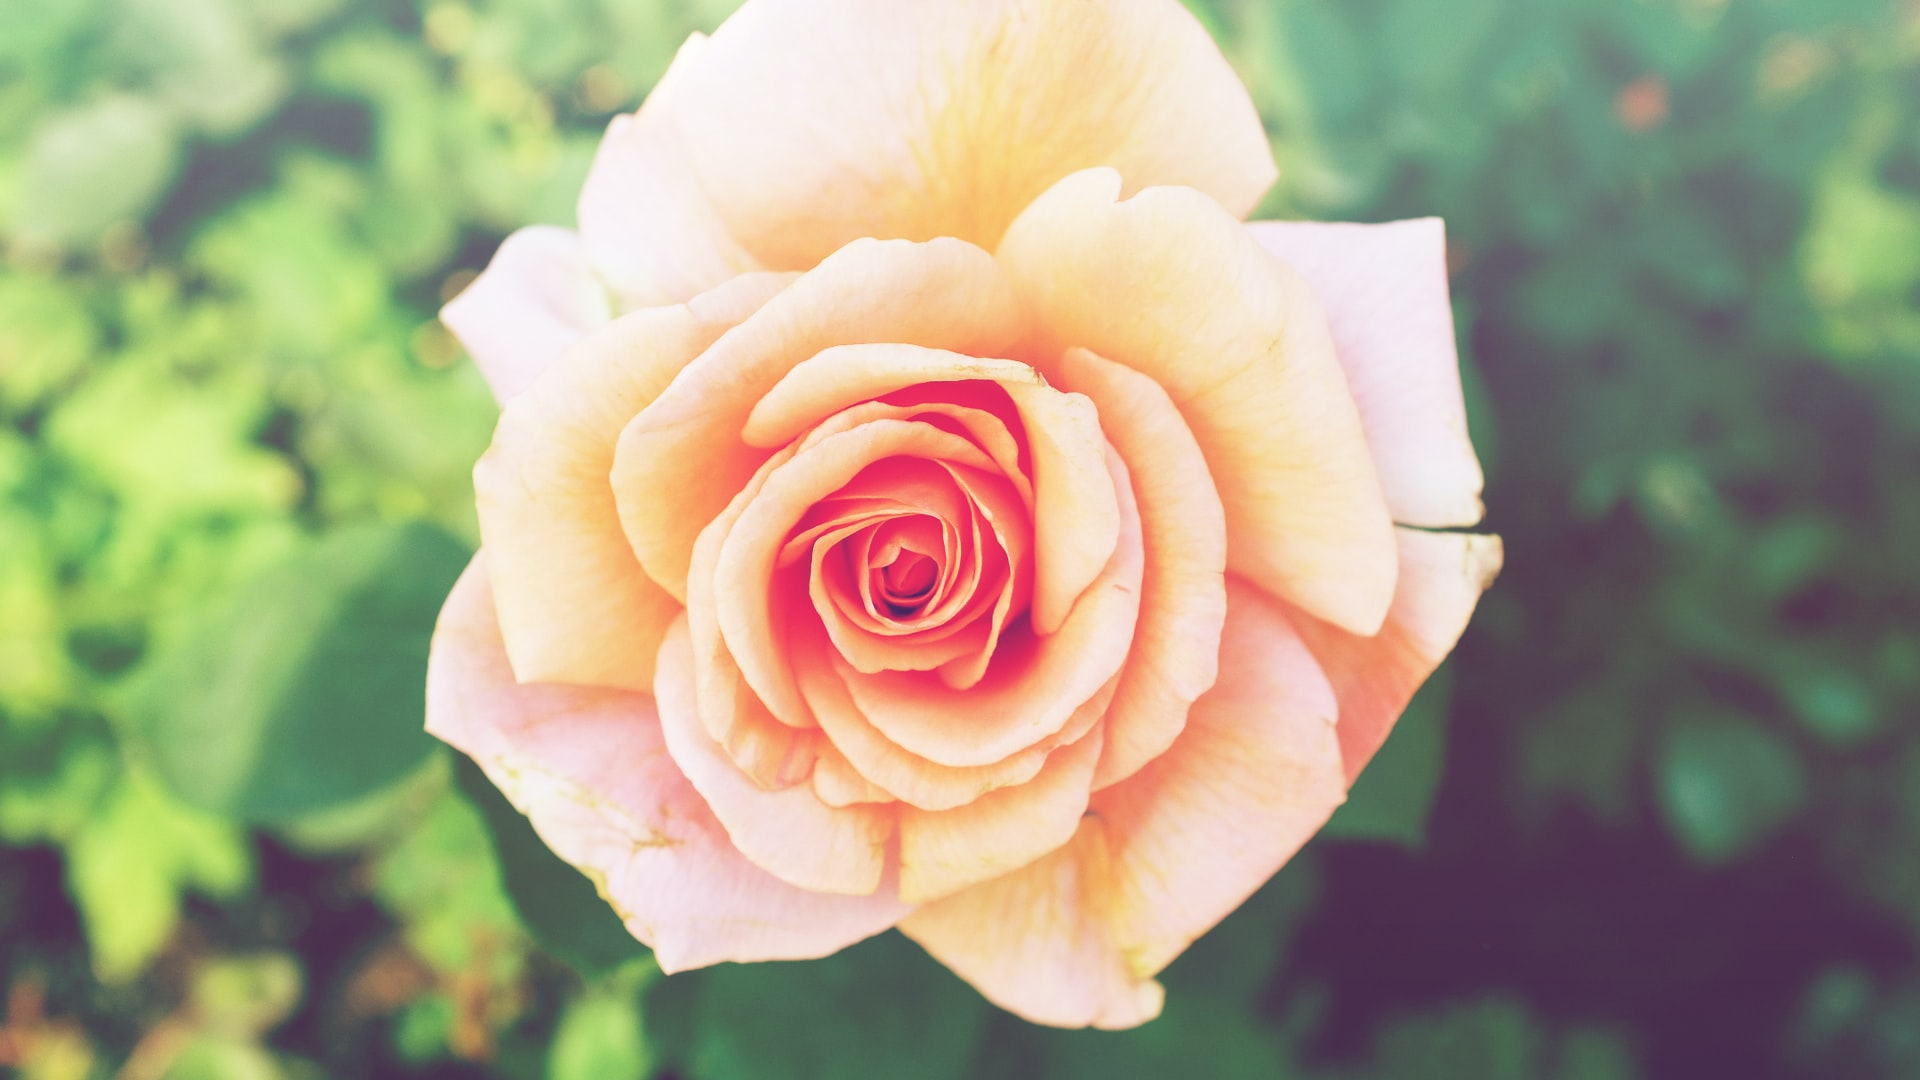 A light pink rose in full bloom